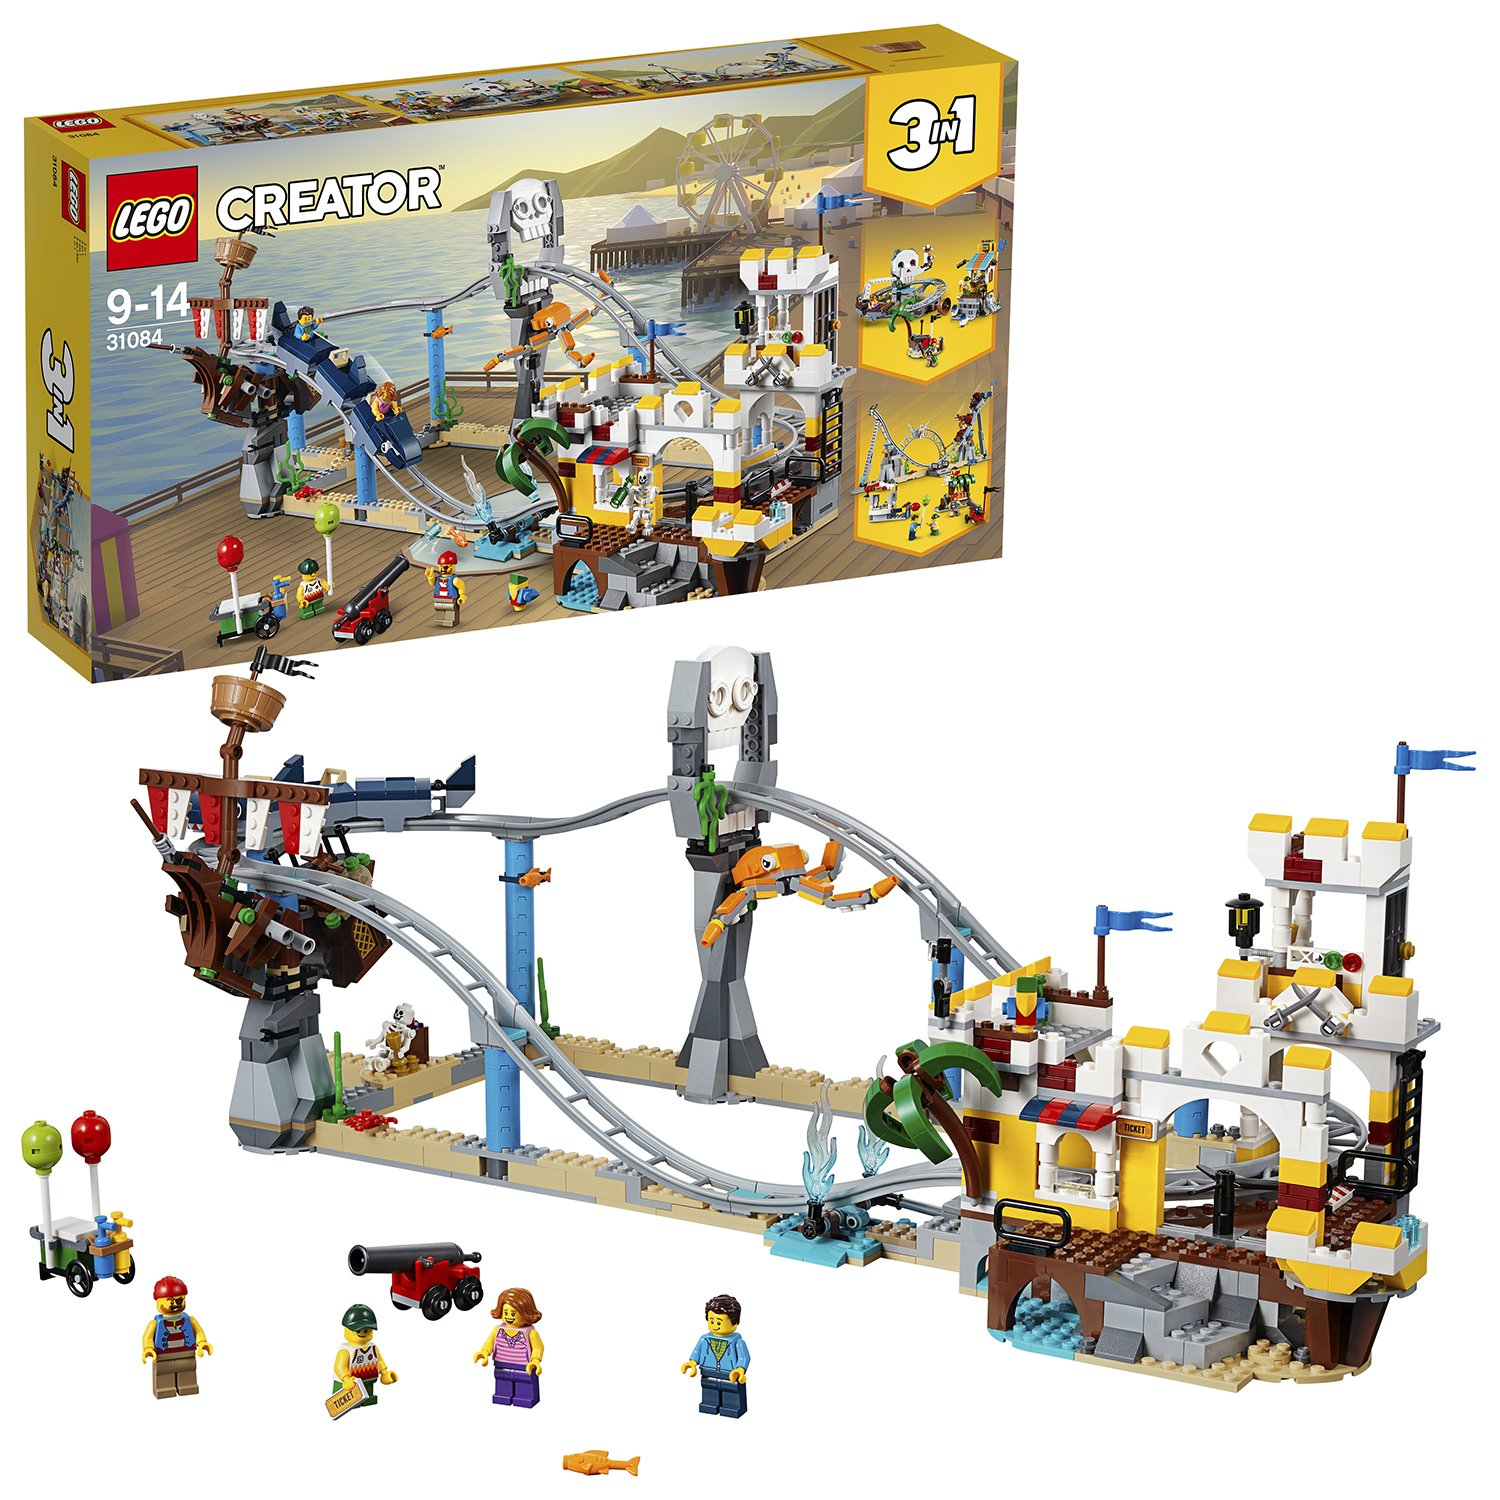 LEGO CREATOR Pirate Roller Coaster Building Toy Set - 31084